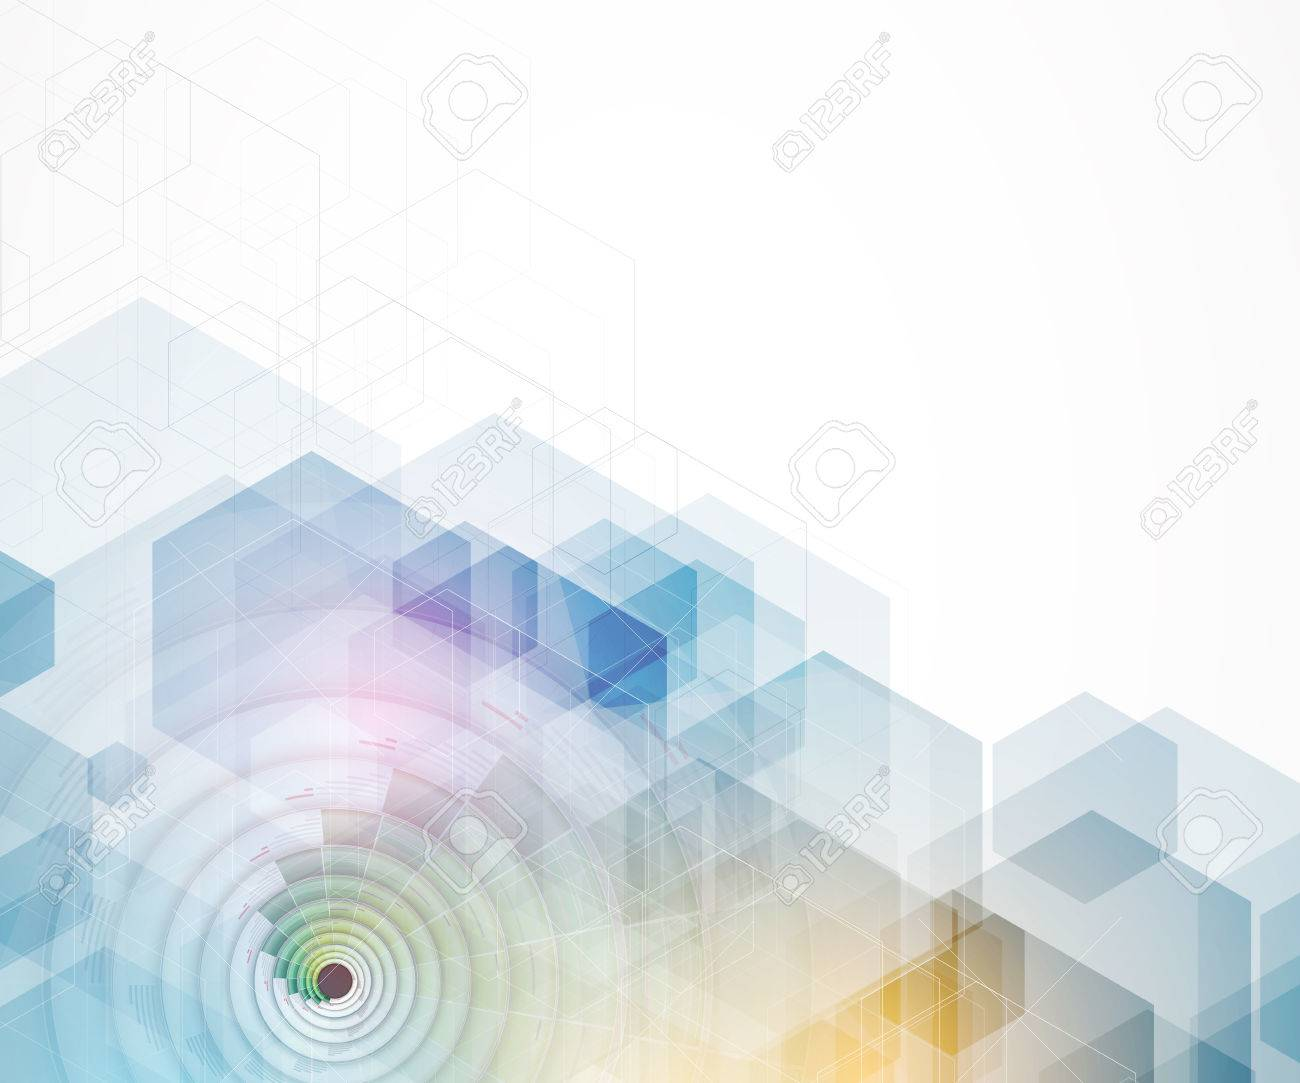 abstract futuristic fade computer technology business background - 51129638